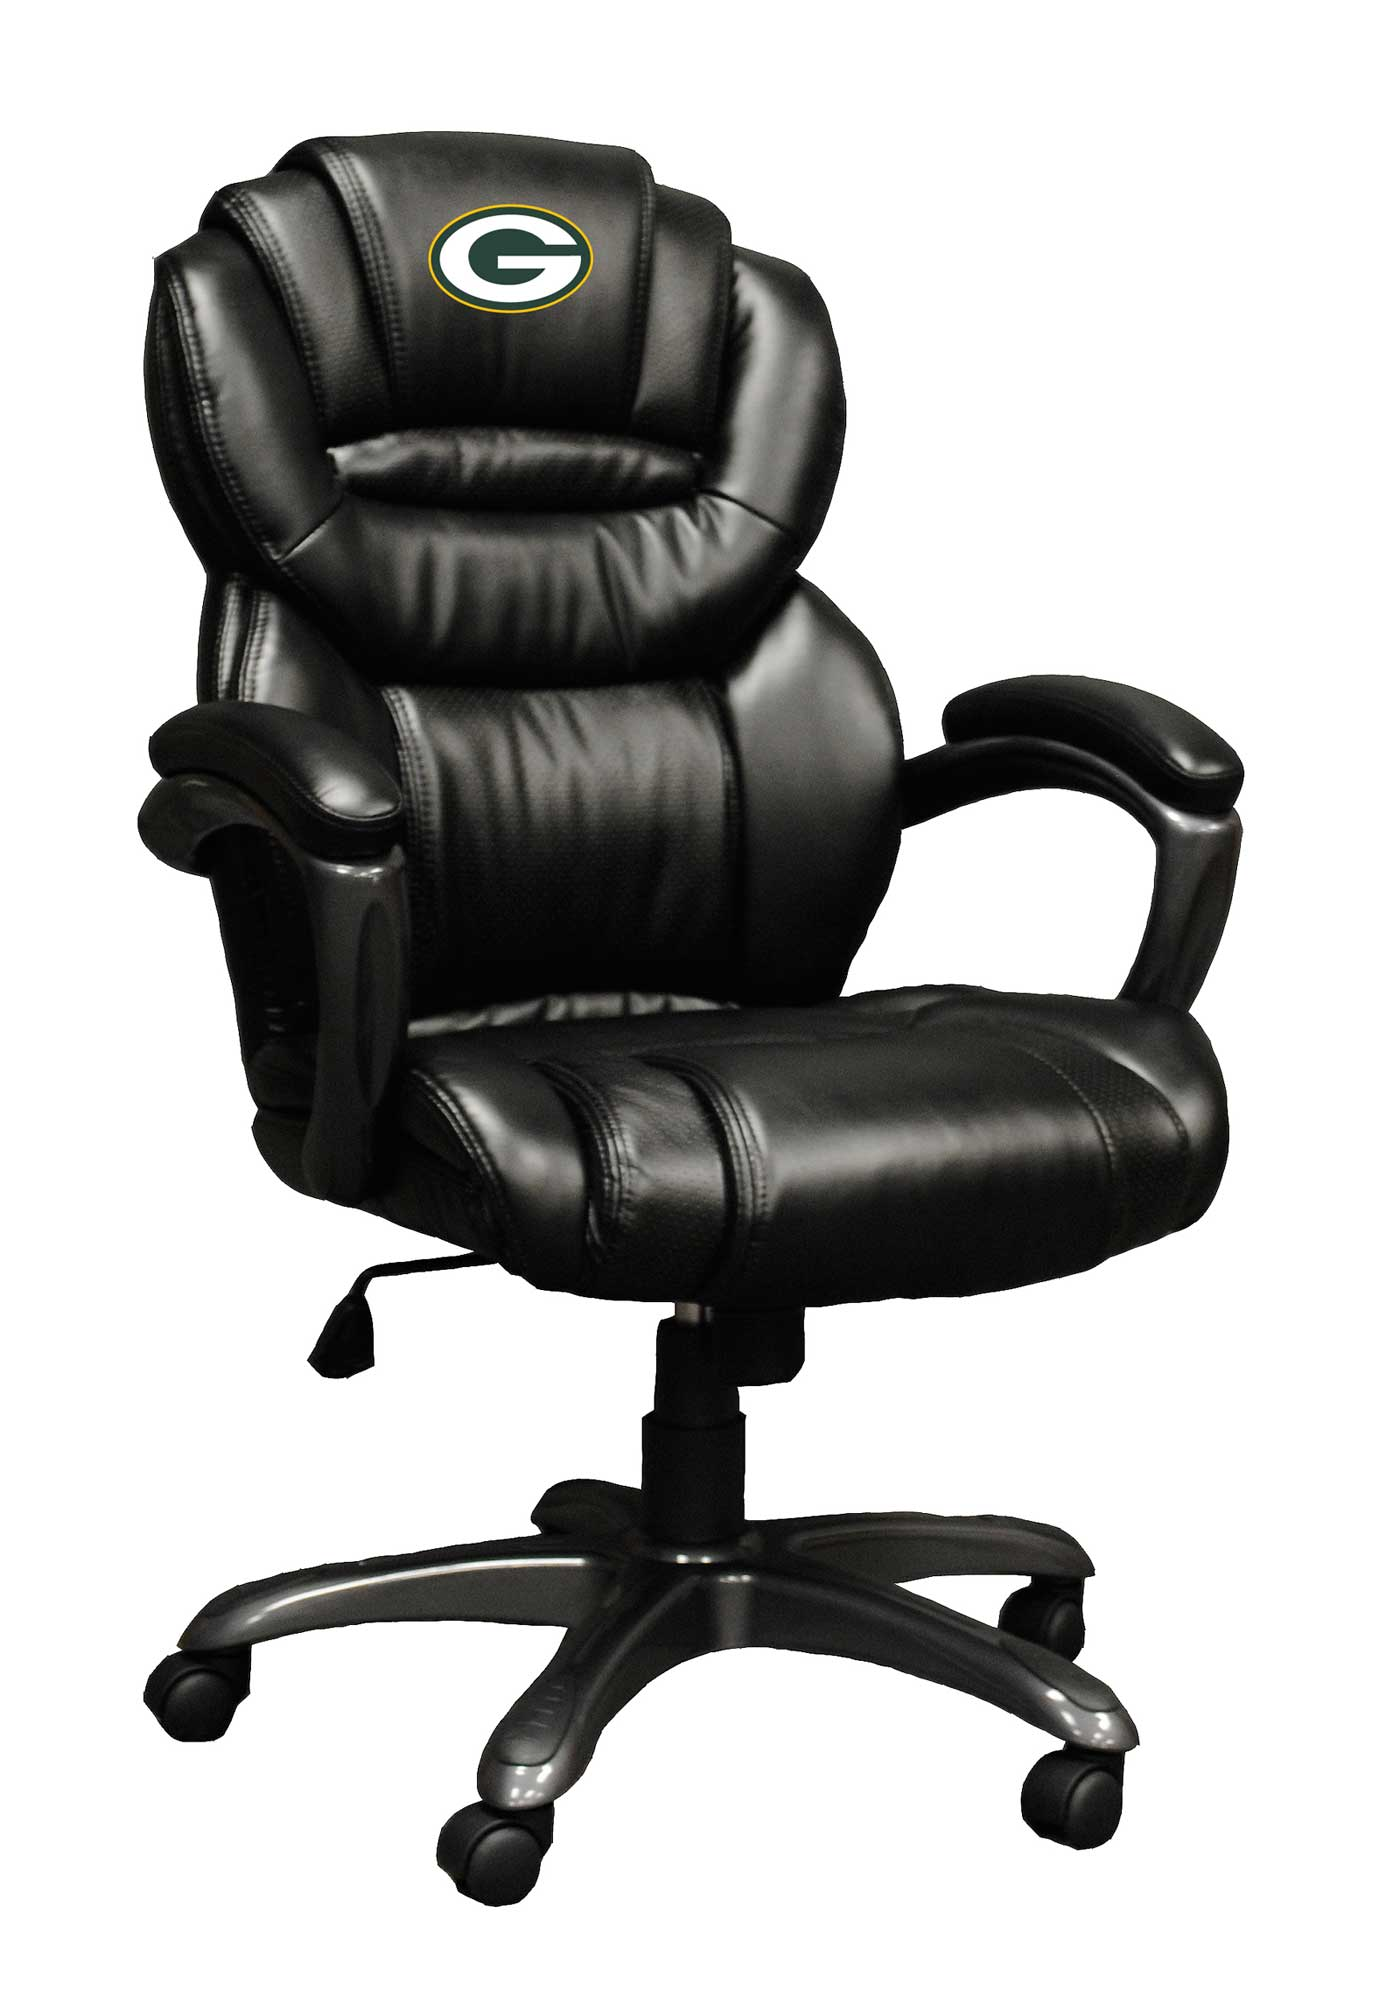 Luxury Executive Office Leather Computer Chair